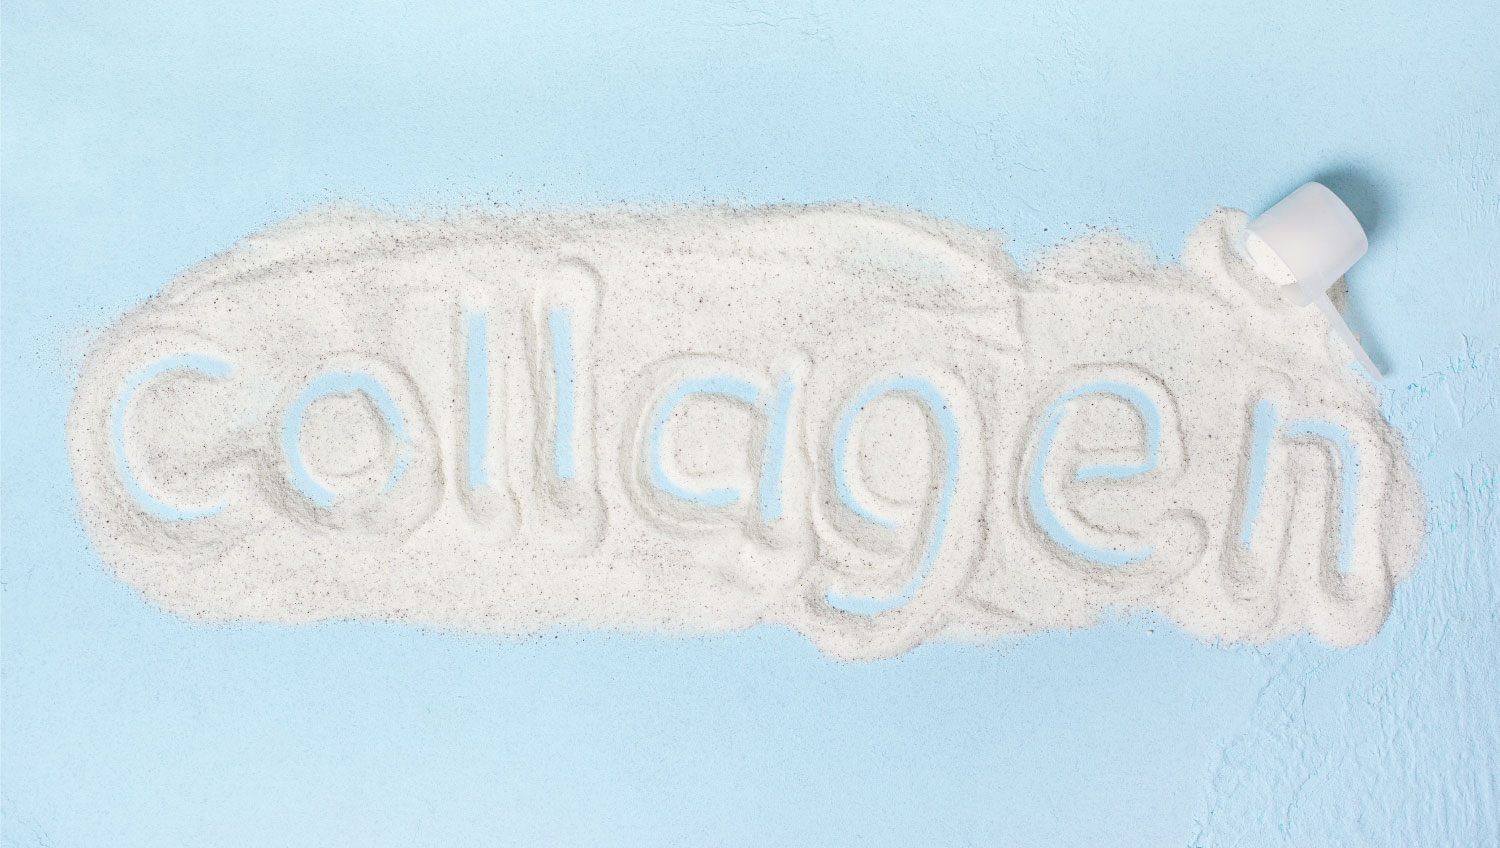 Collagen: What Are The Benefits and Should I Take Them?